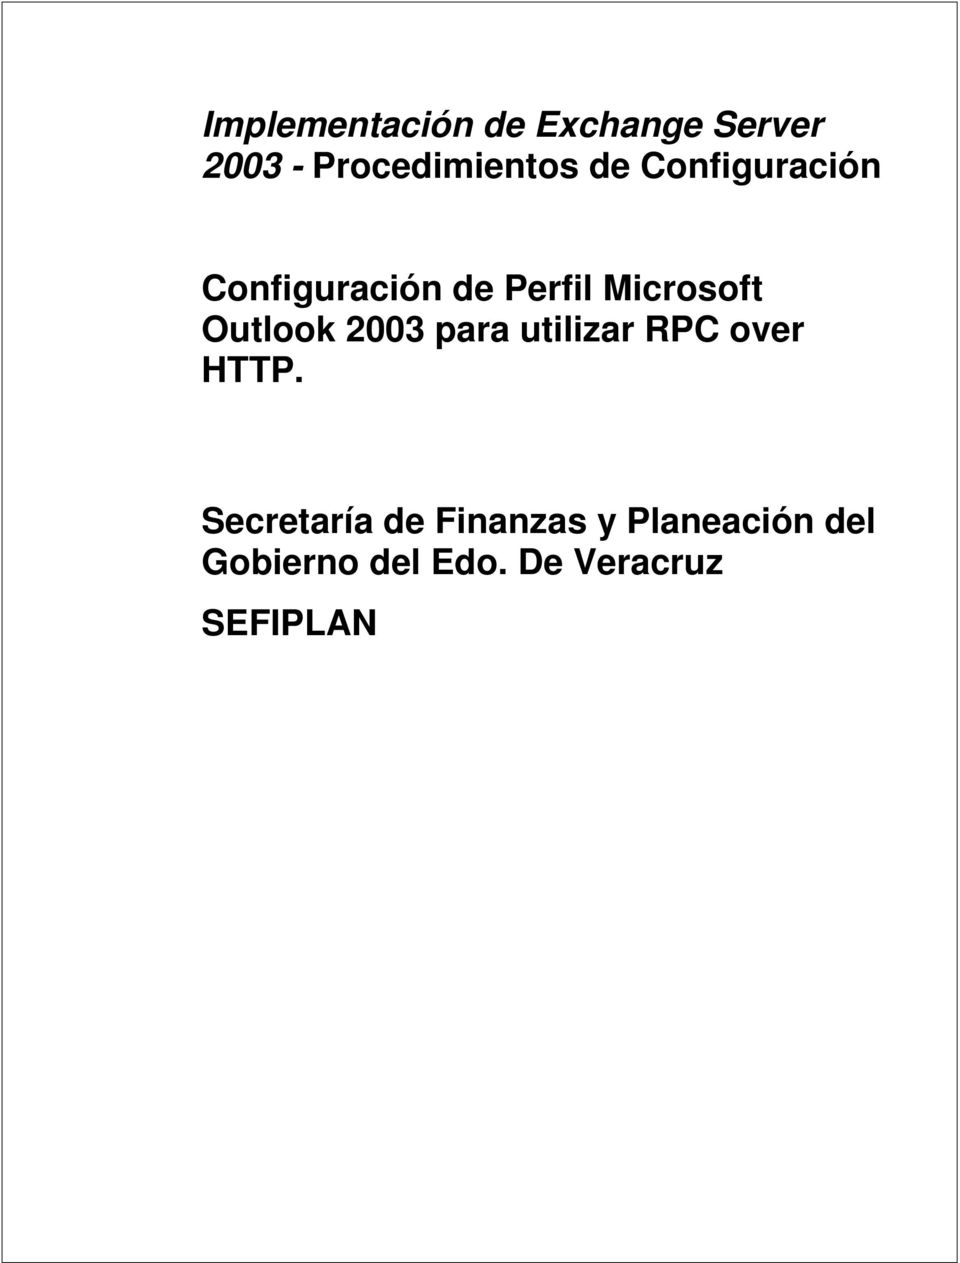 Outlook 2003 para utilizar RPC over HTTP.